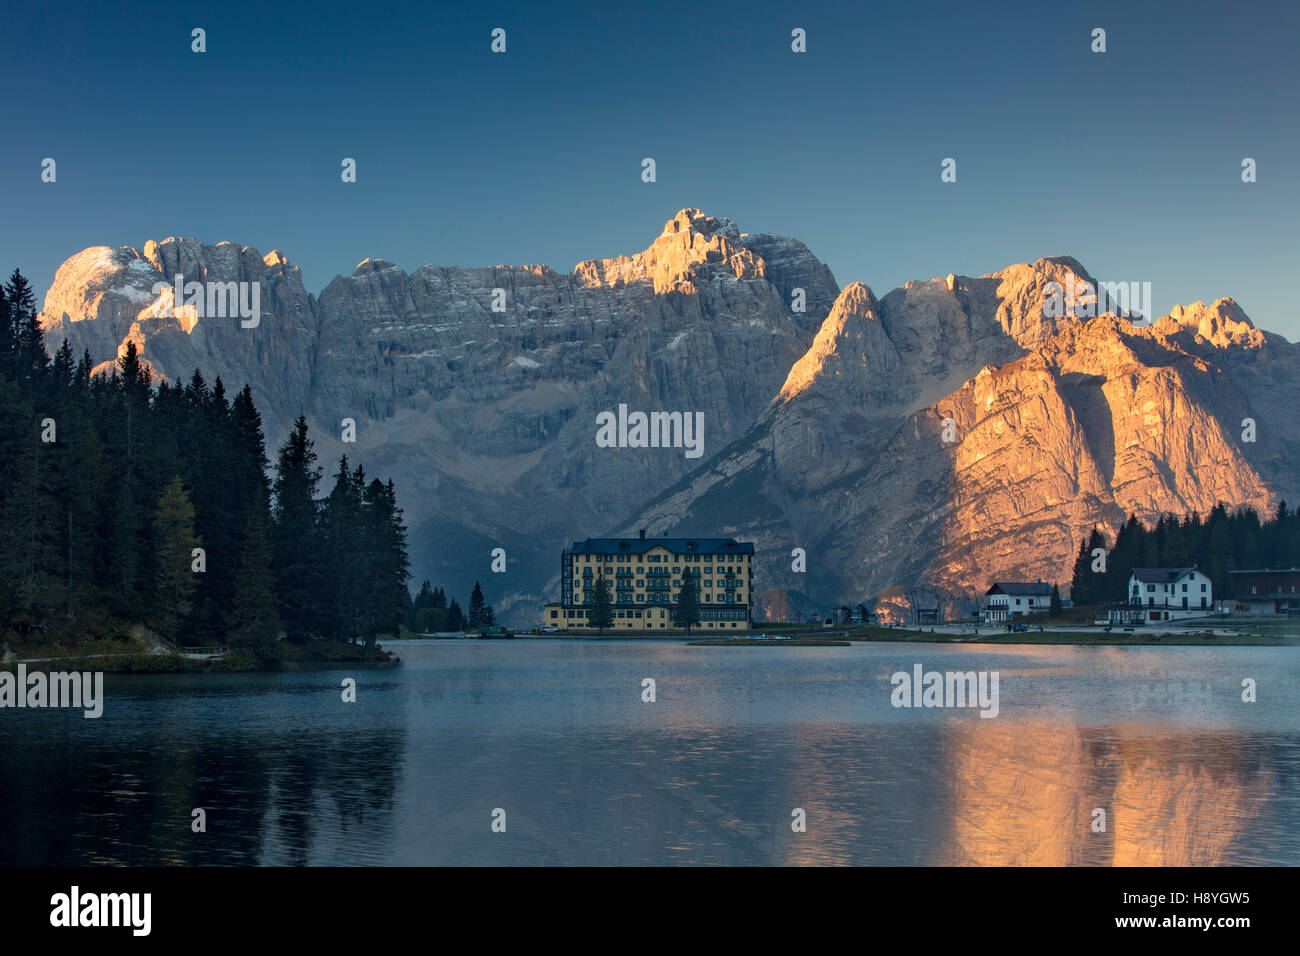 The Marmarole and Sorapiss Groups of the Dolomites tower over Istituto Pio XII - a private hospital on Lago Misurina, - Stock Image